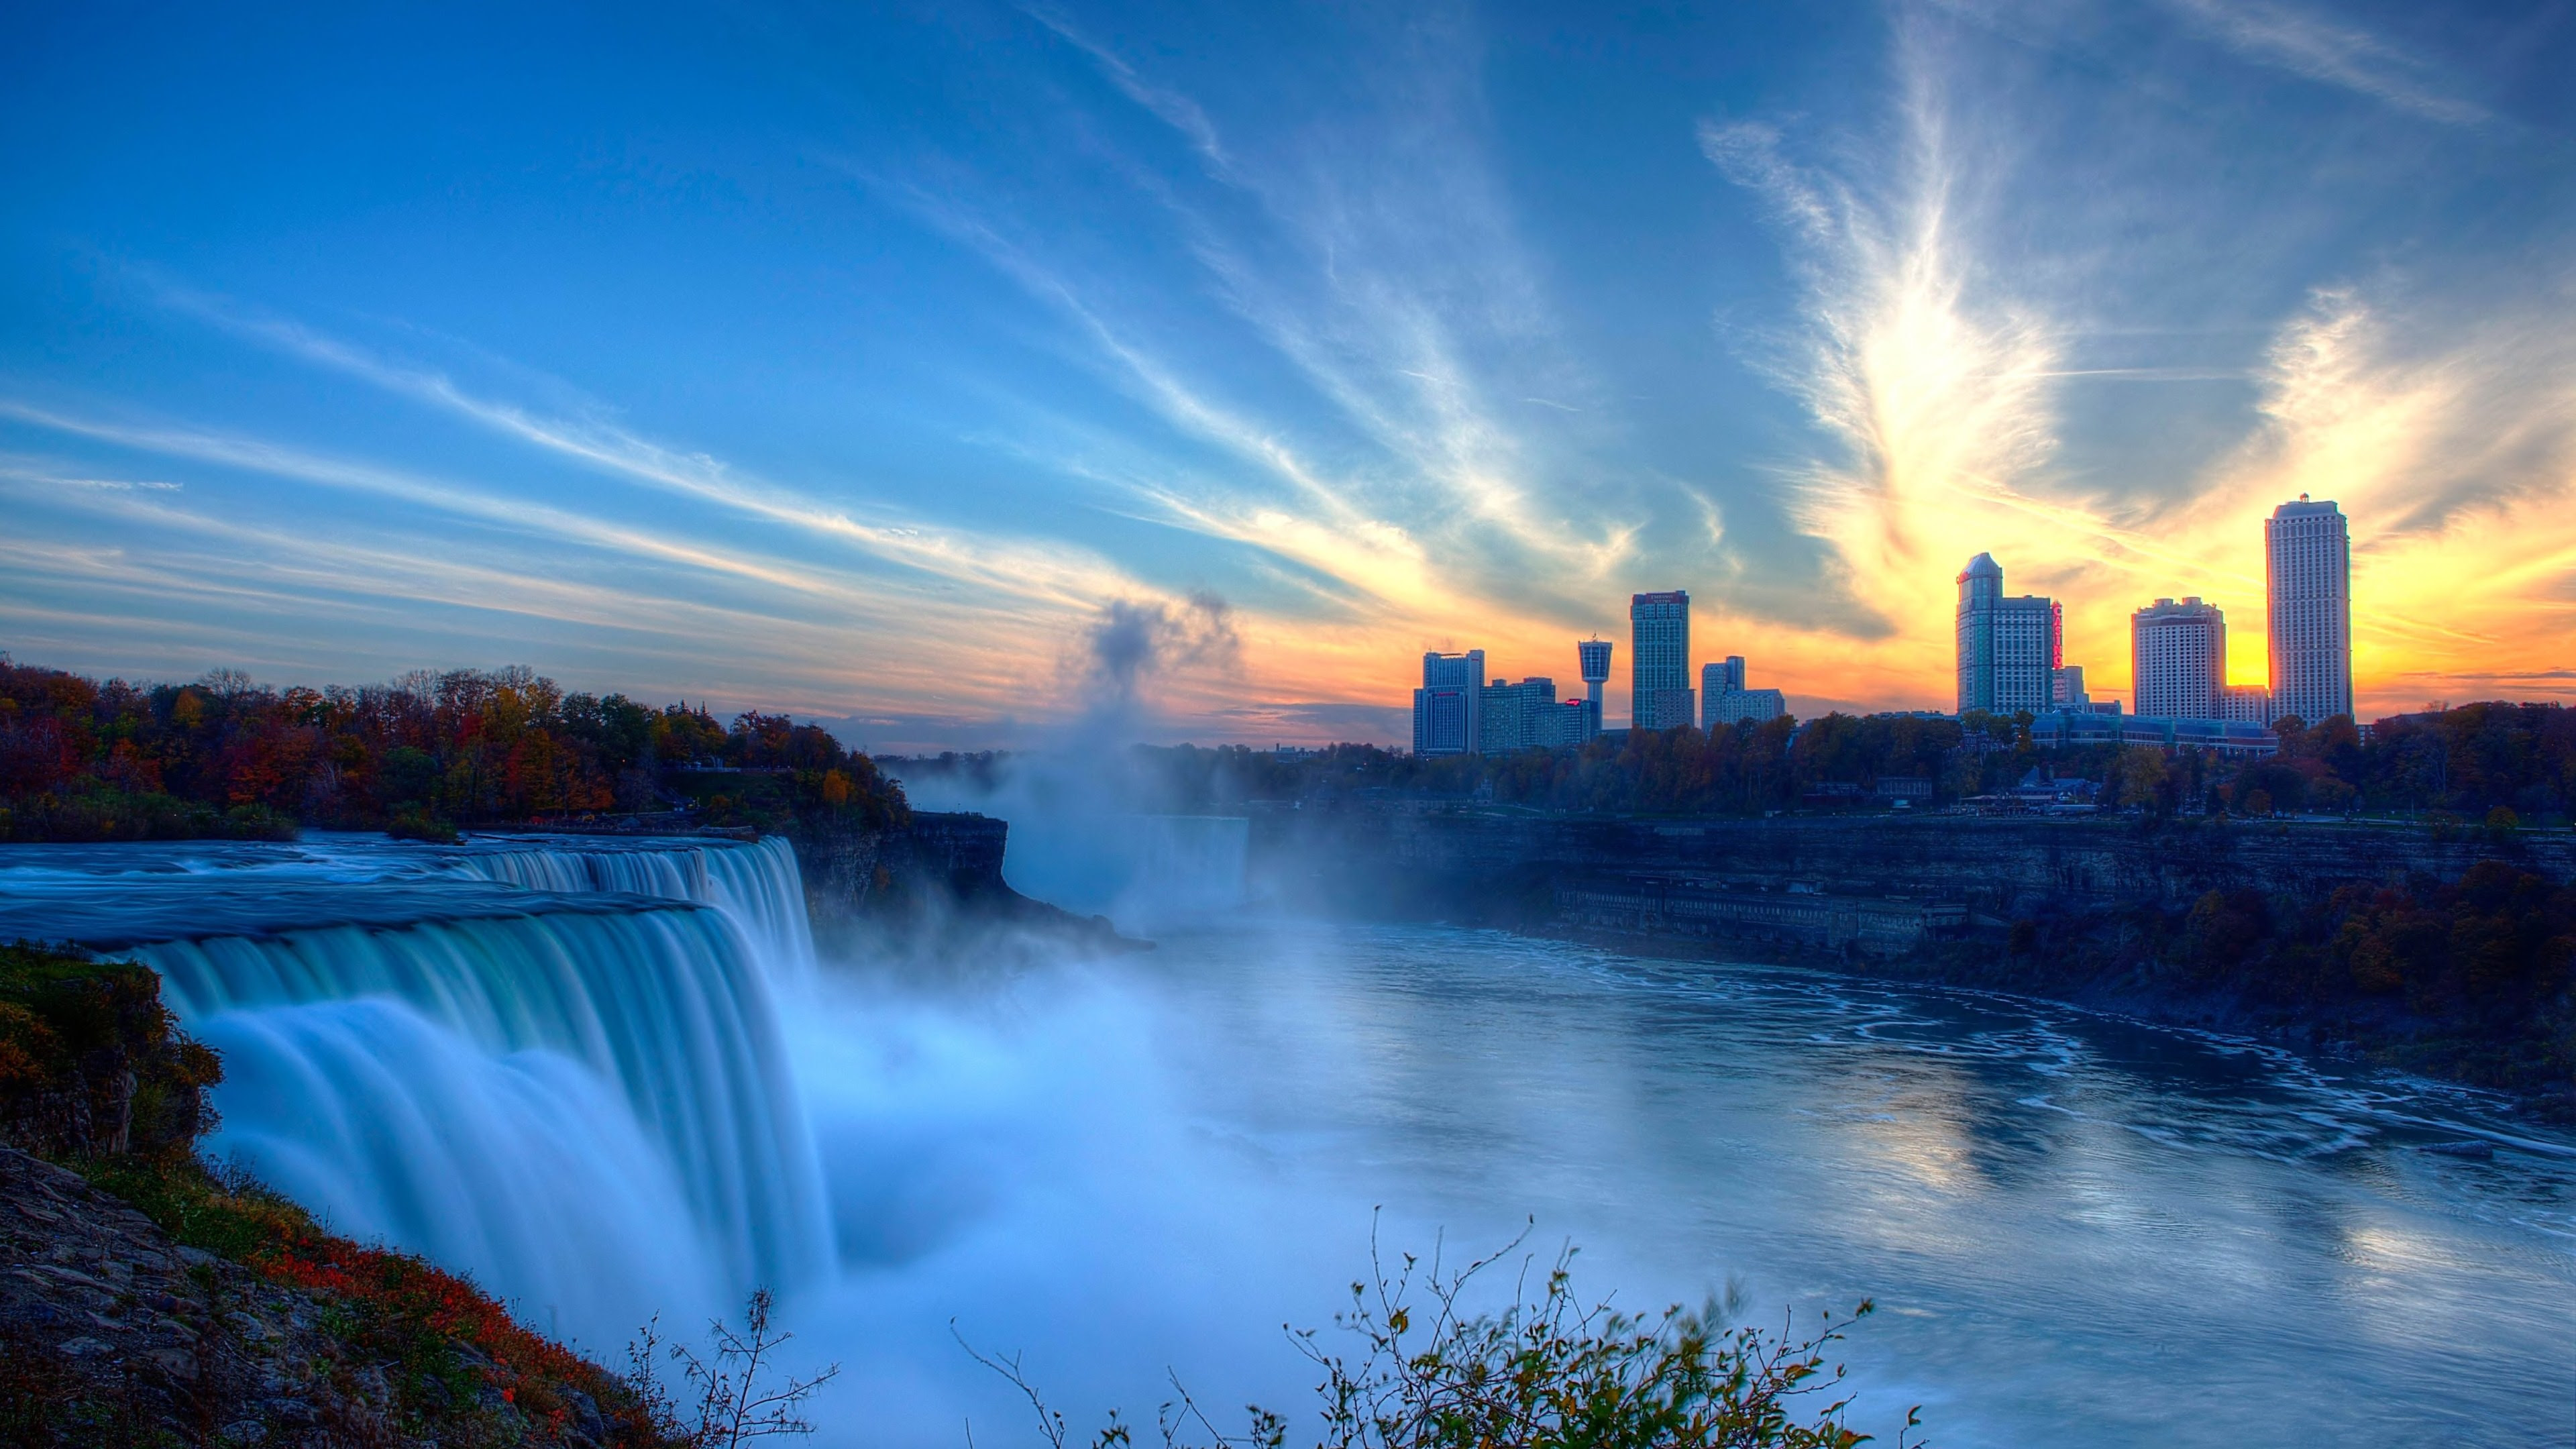 Beautiful Sunset at Niagara Fall Full HD [3840 X 2160]